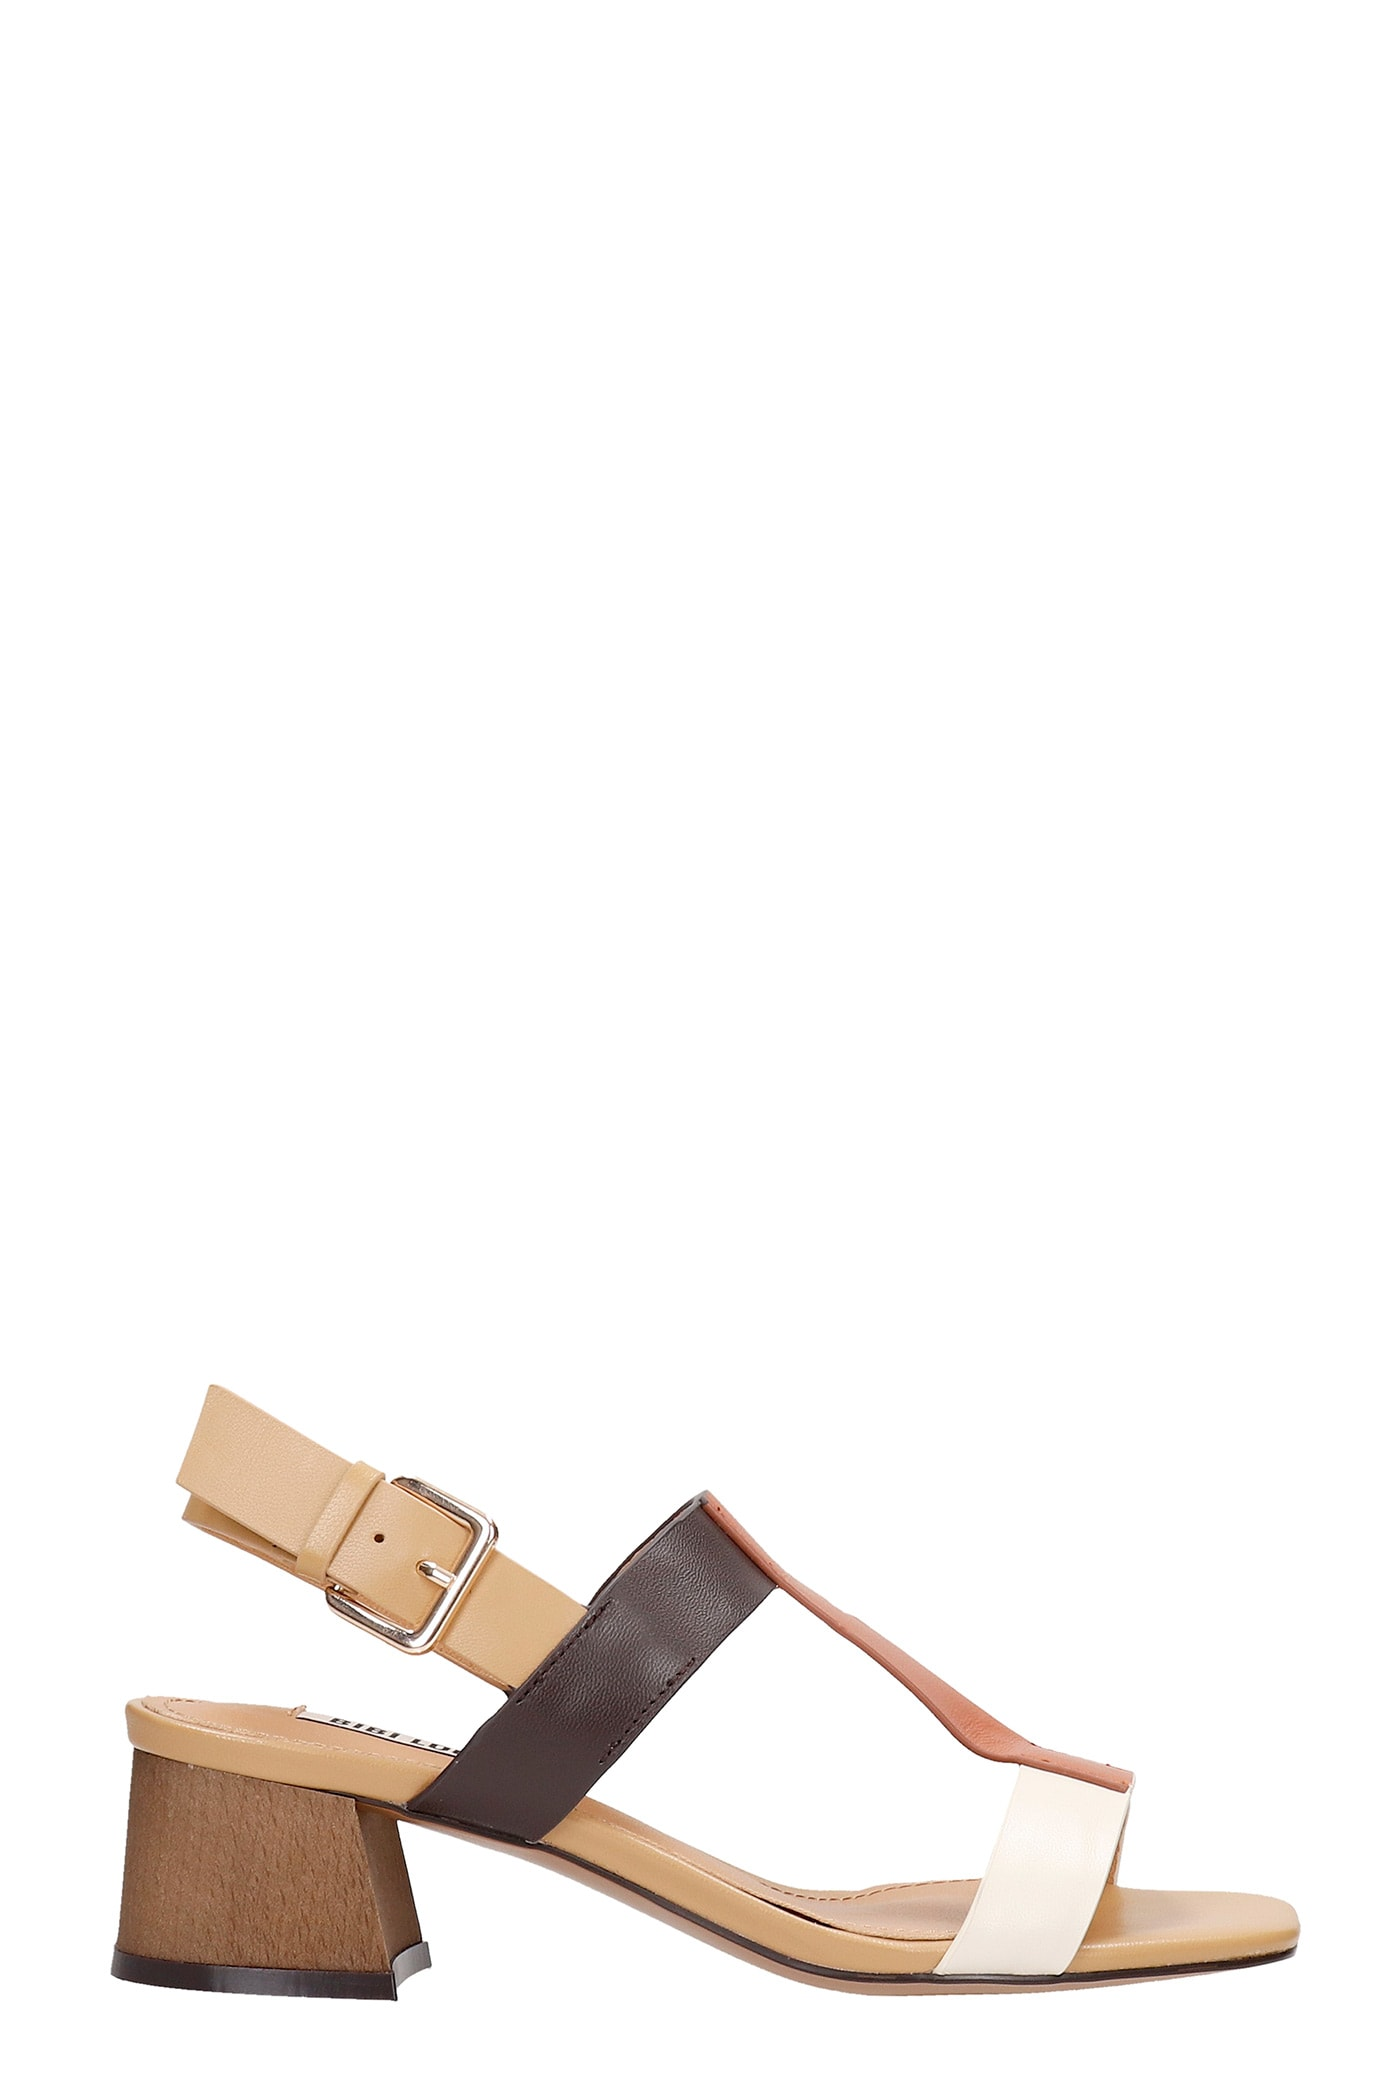 Sandals In Beige Leather